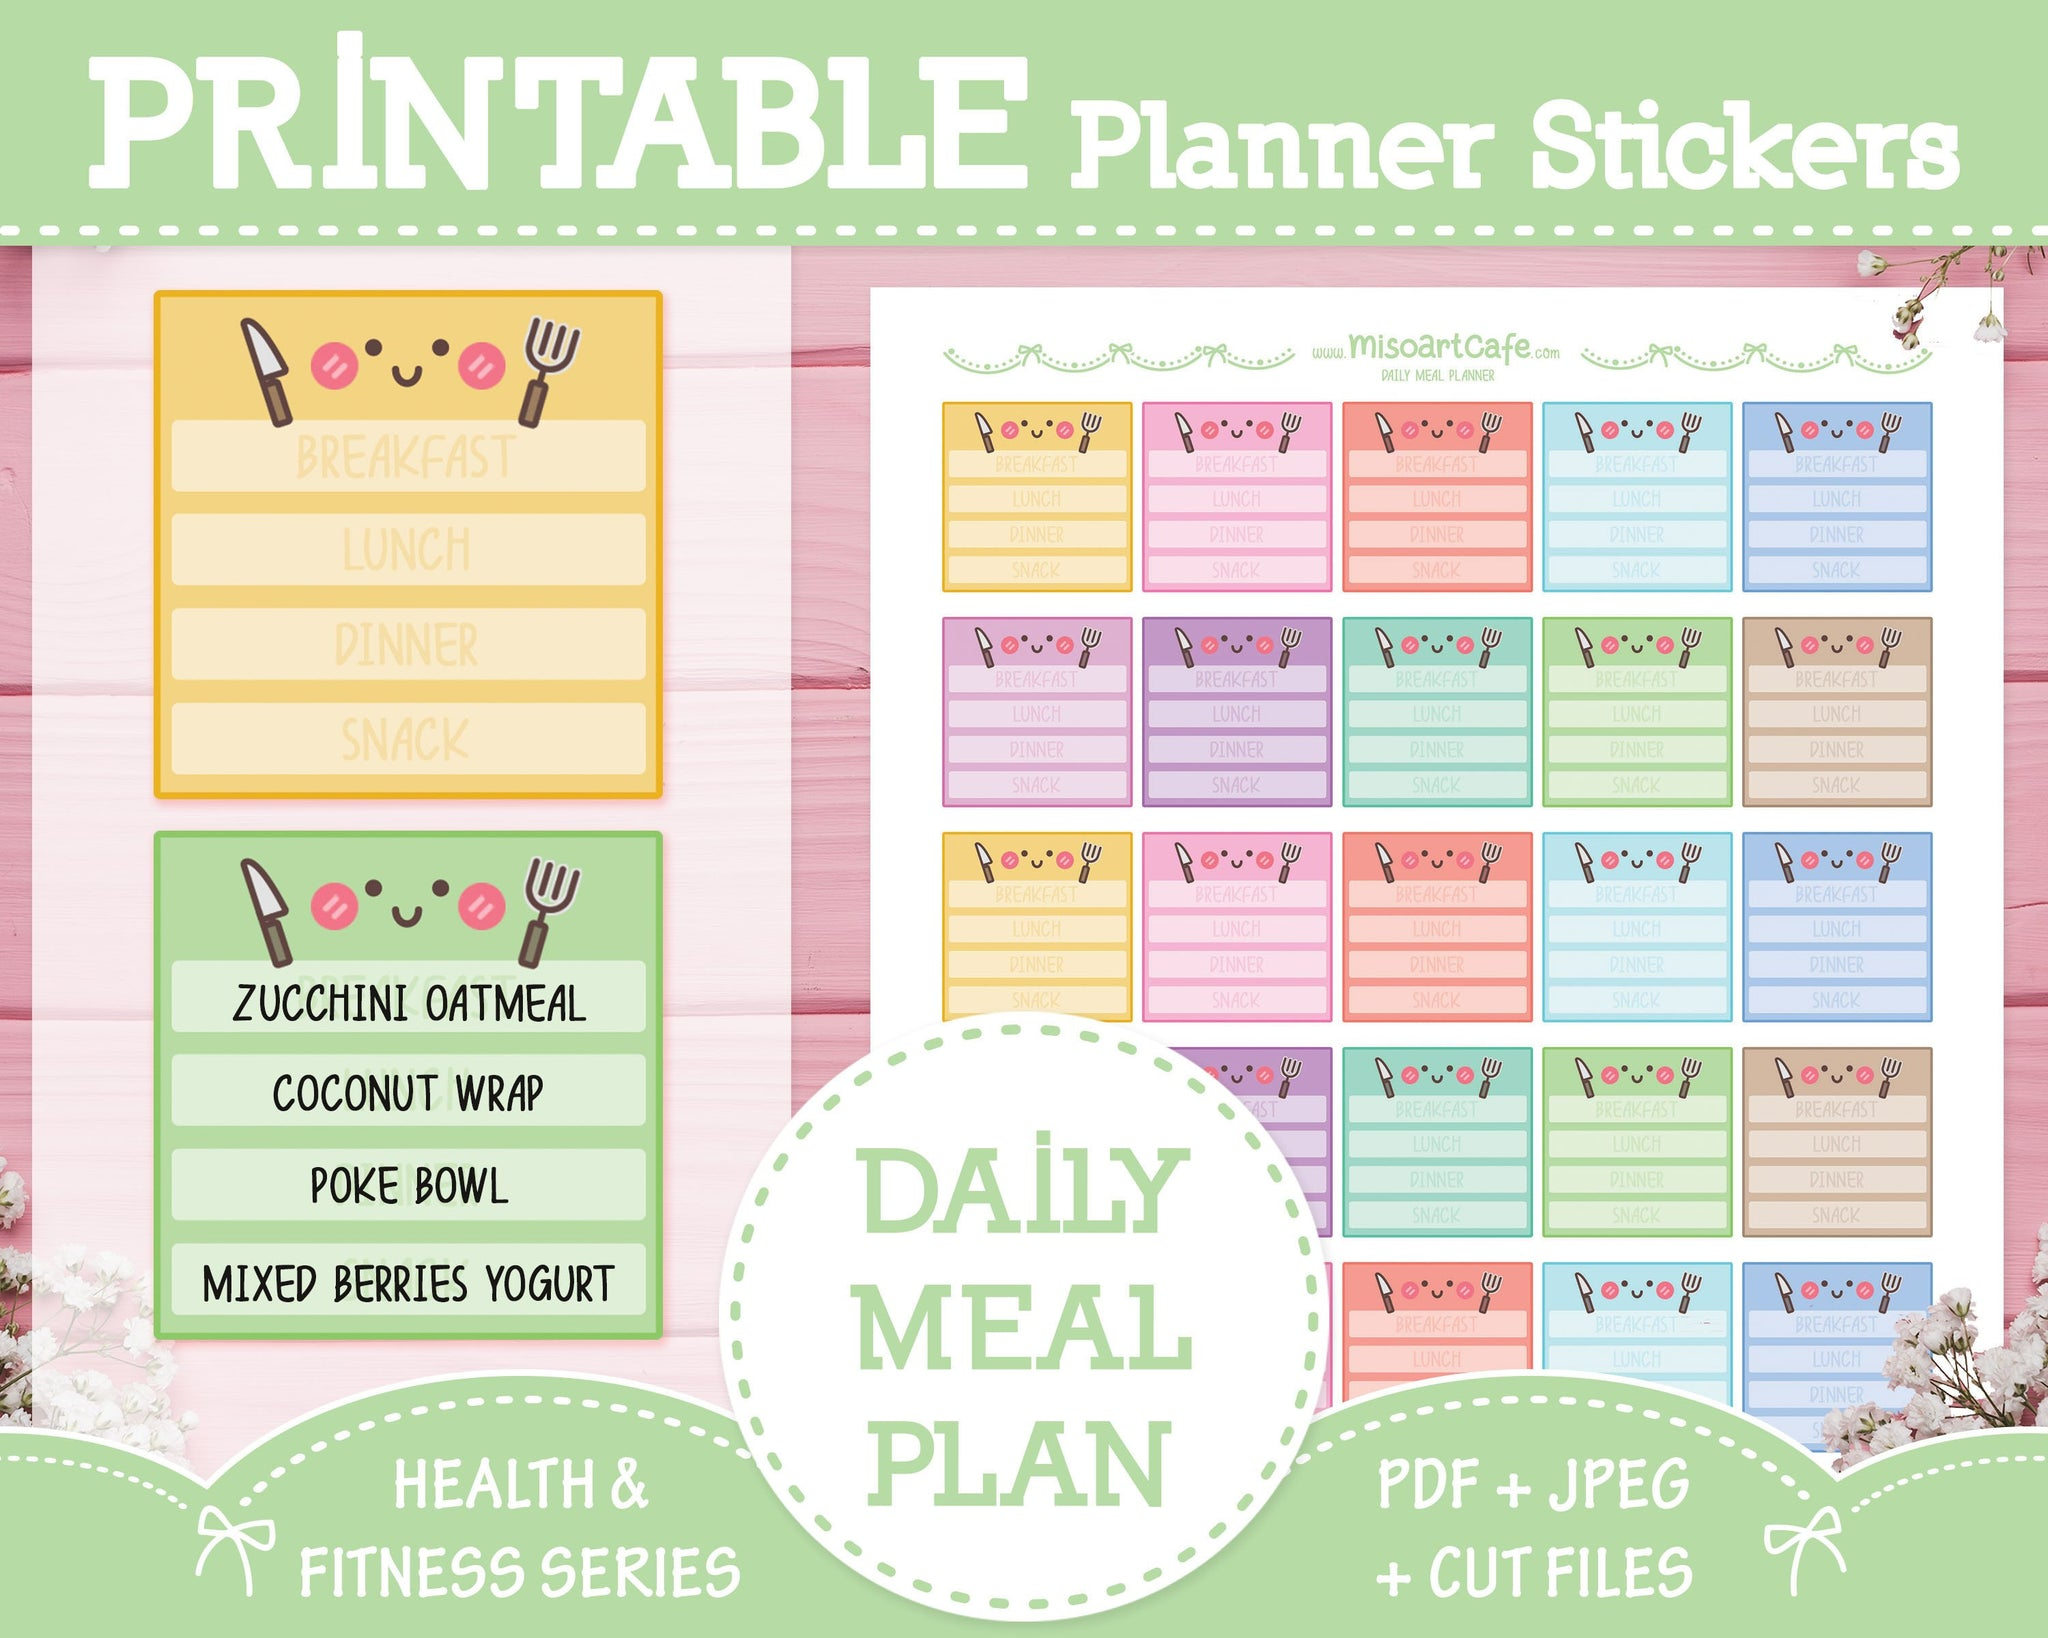 Printable Meal Planner - Health & Fitness Planner Stickers - Miso Art Cafe